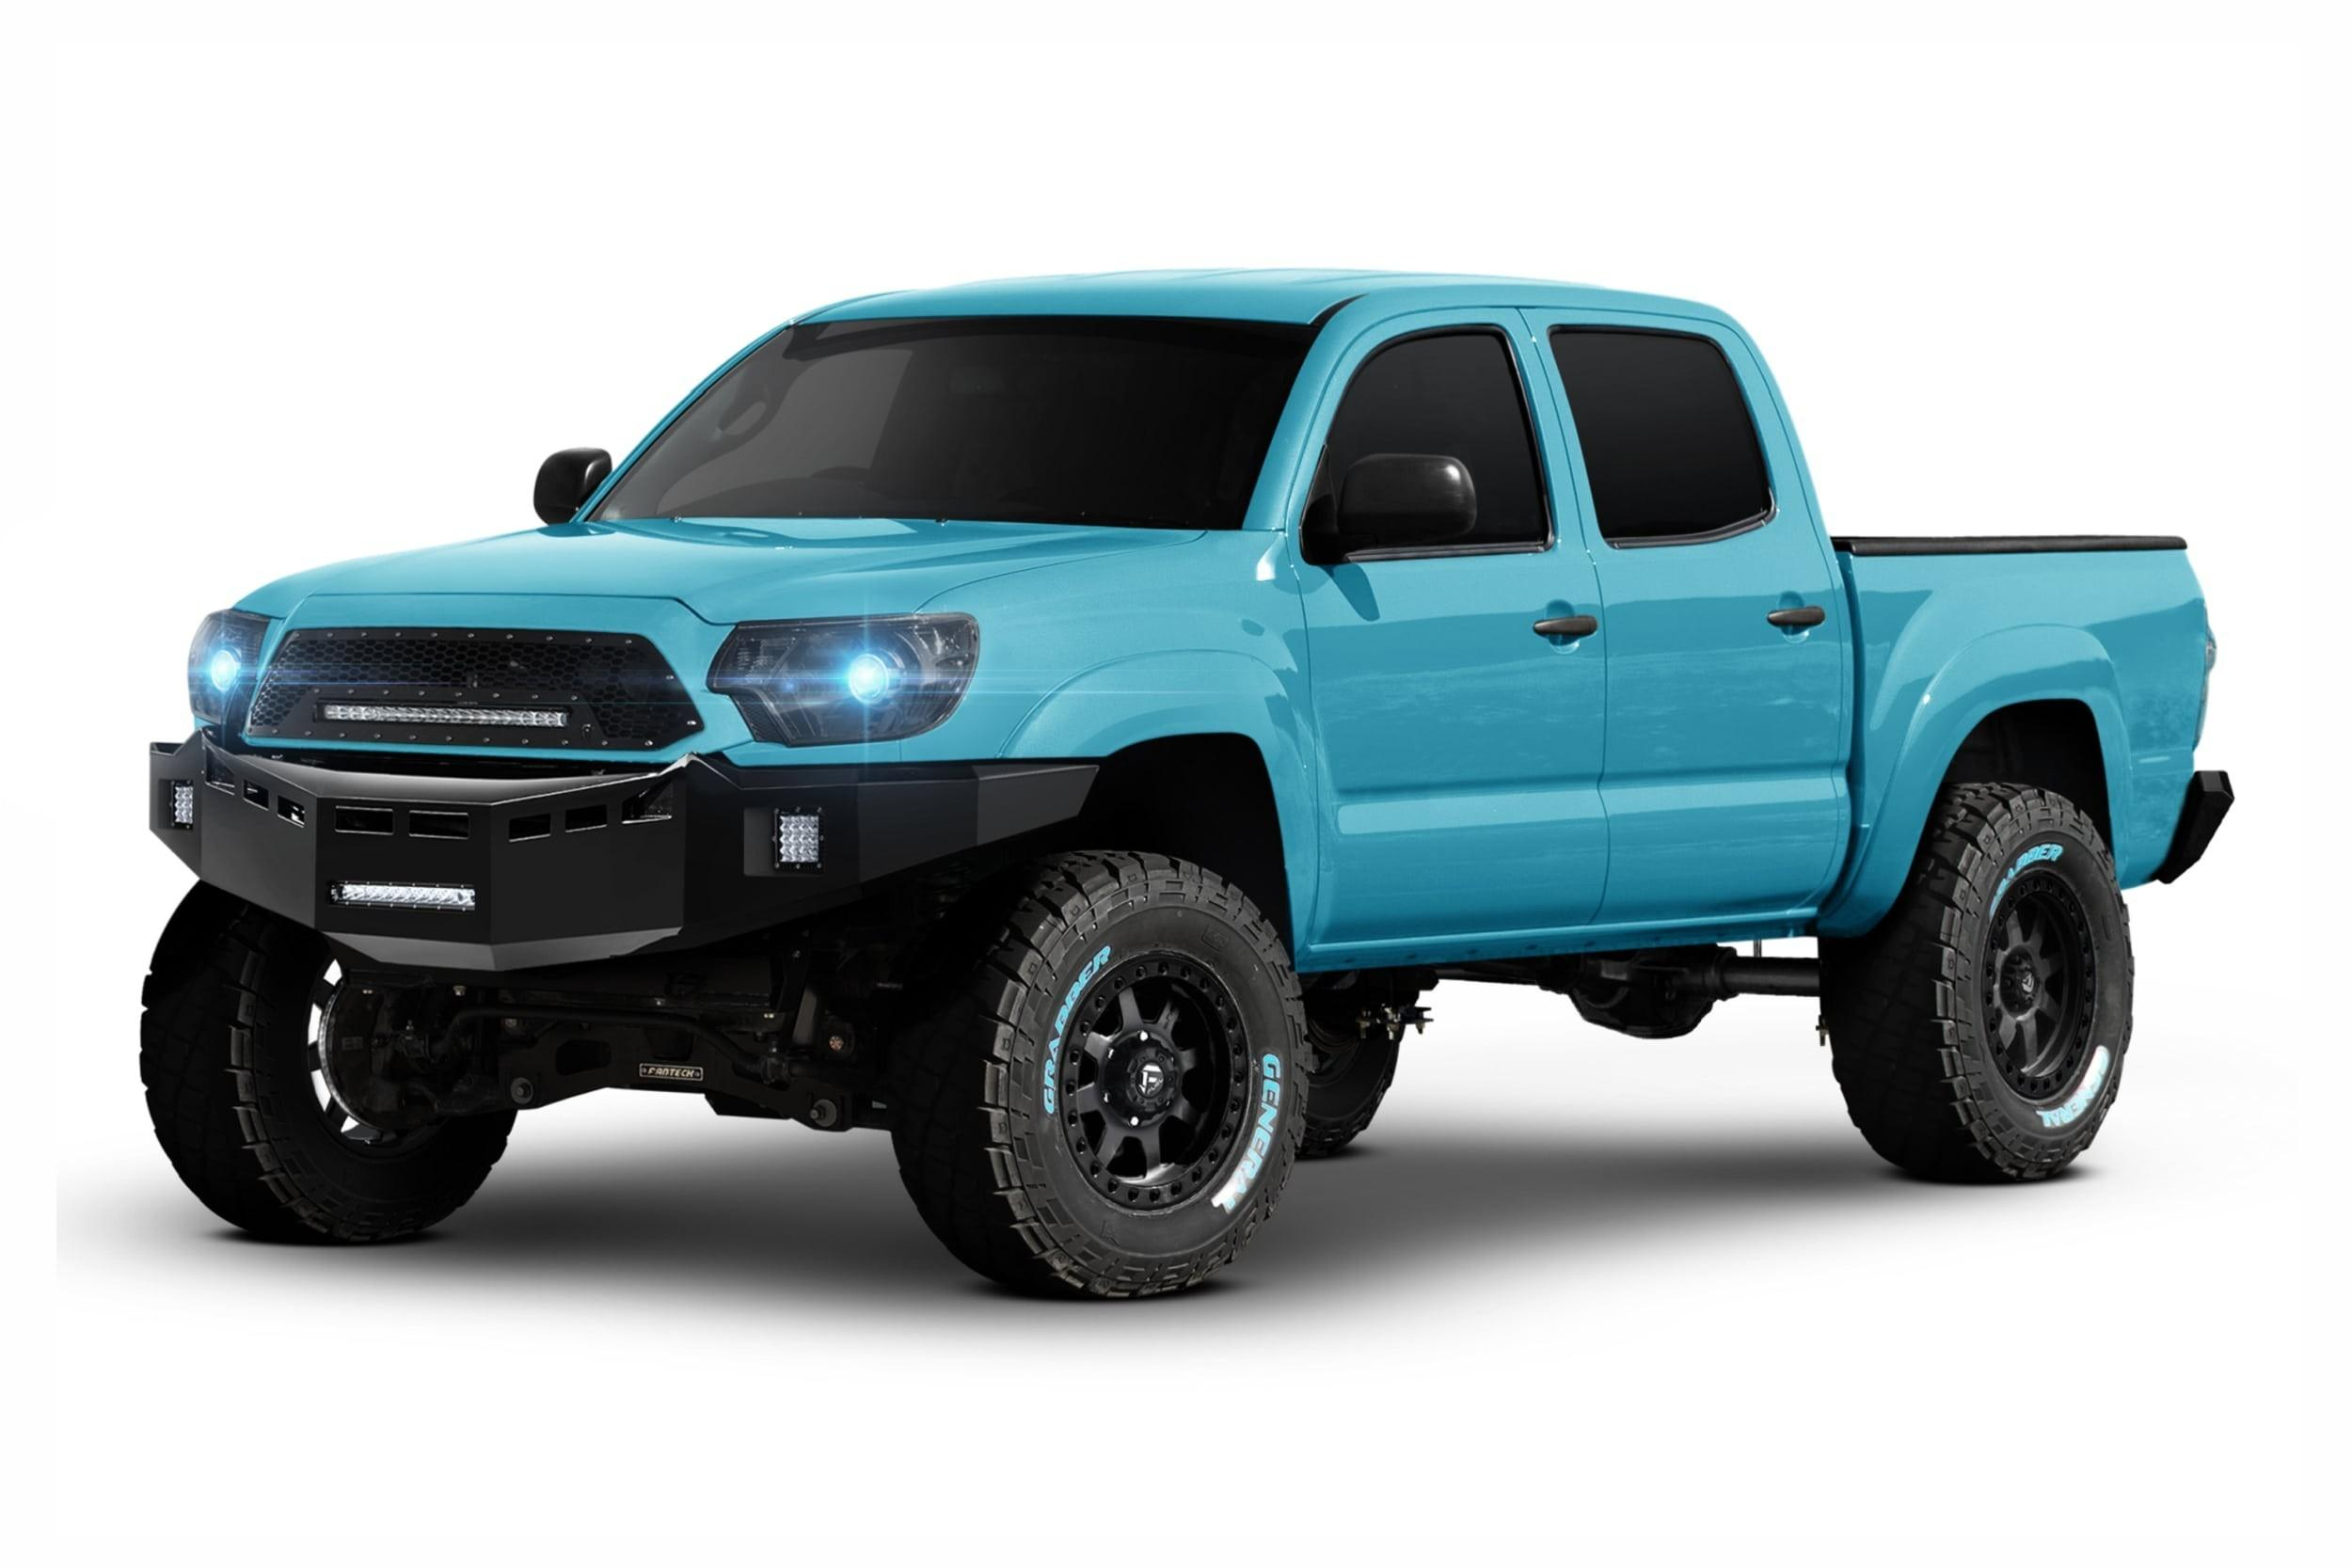 redesign toyota mpg tacoma side concept